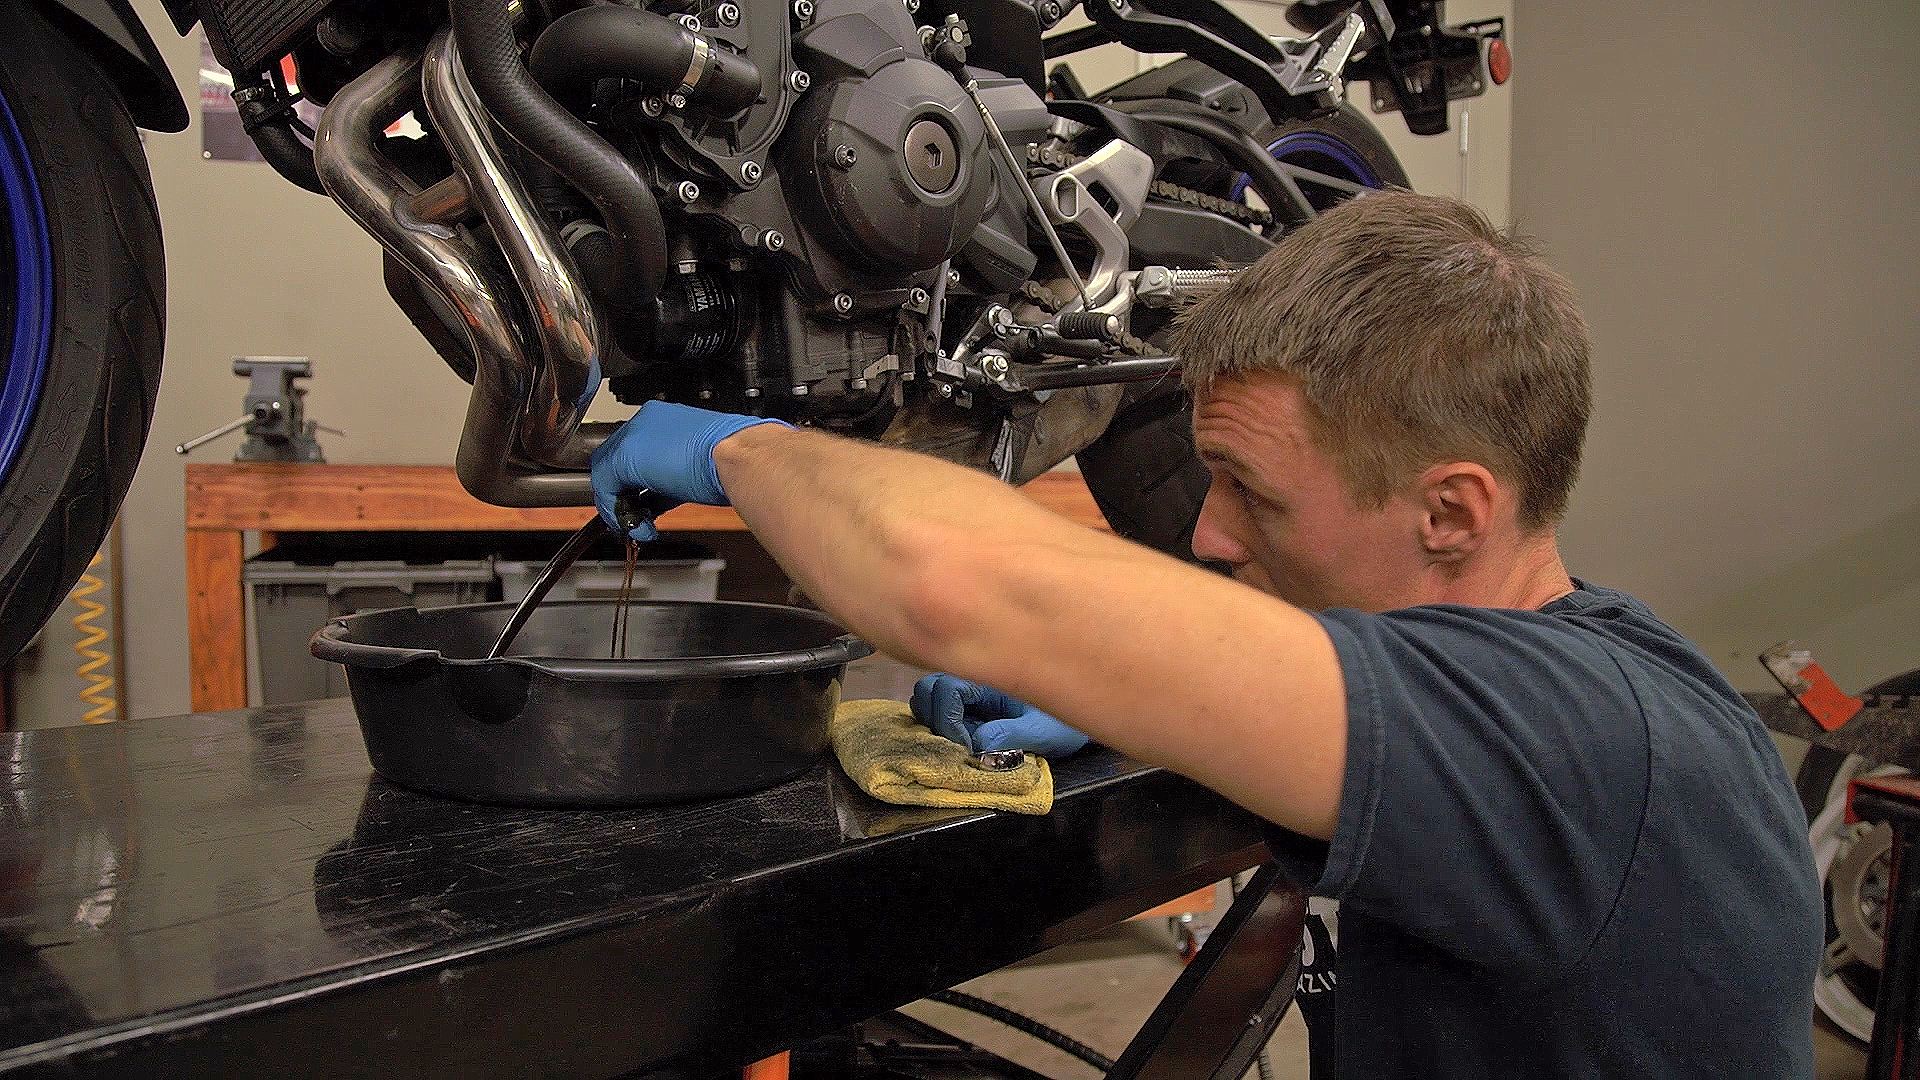 Mineral Oil Or Synthetic Oil For Motorcycles? | Motorcyclist